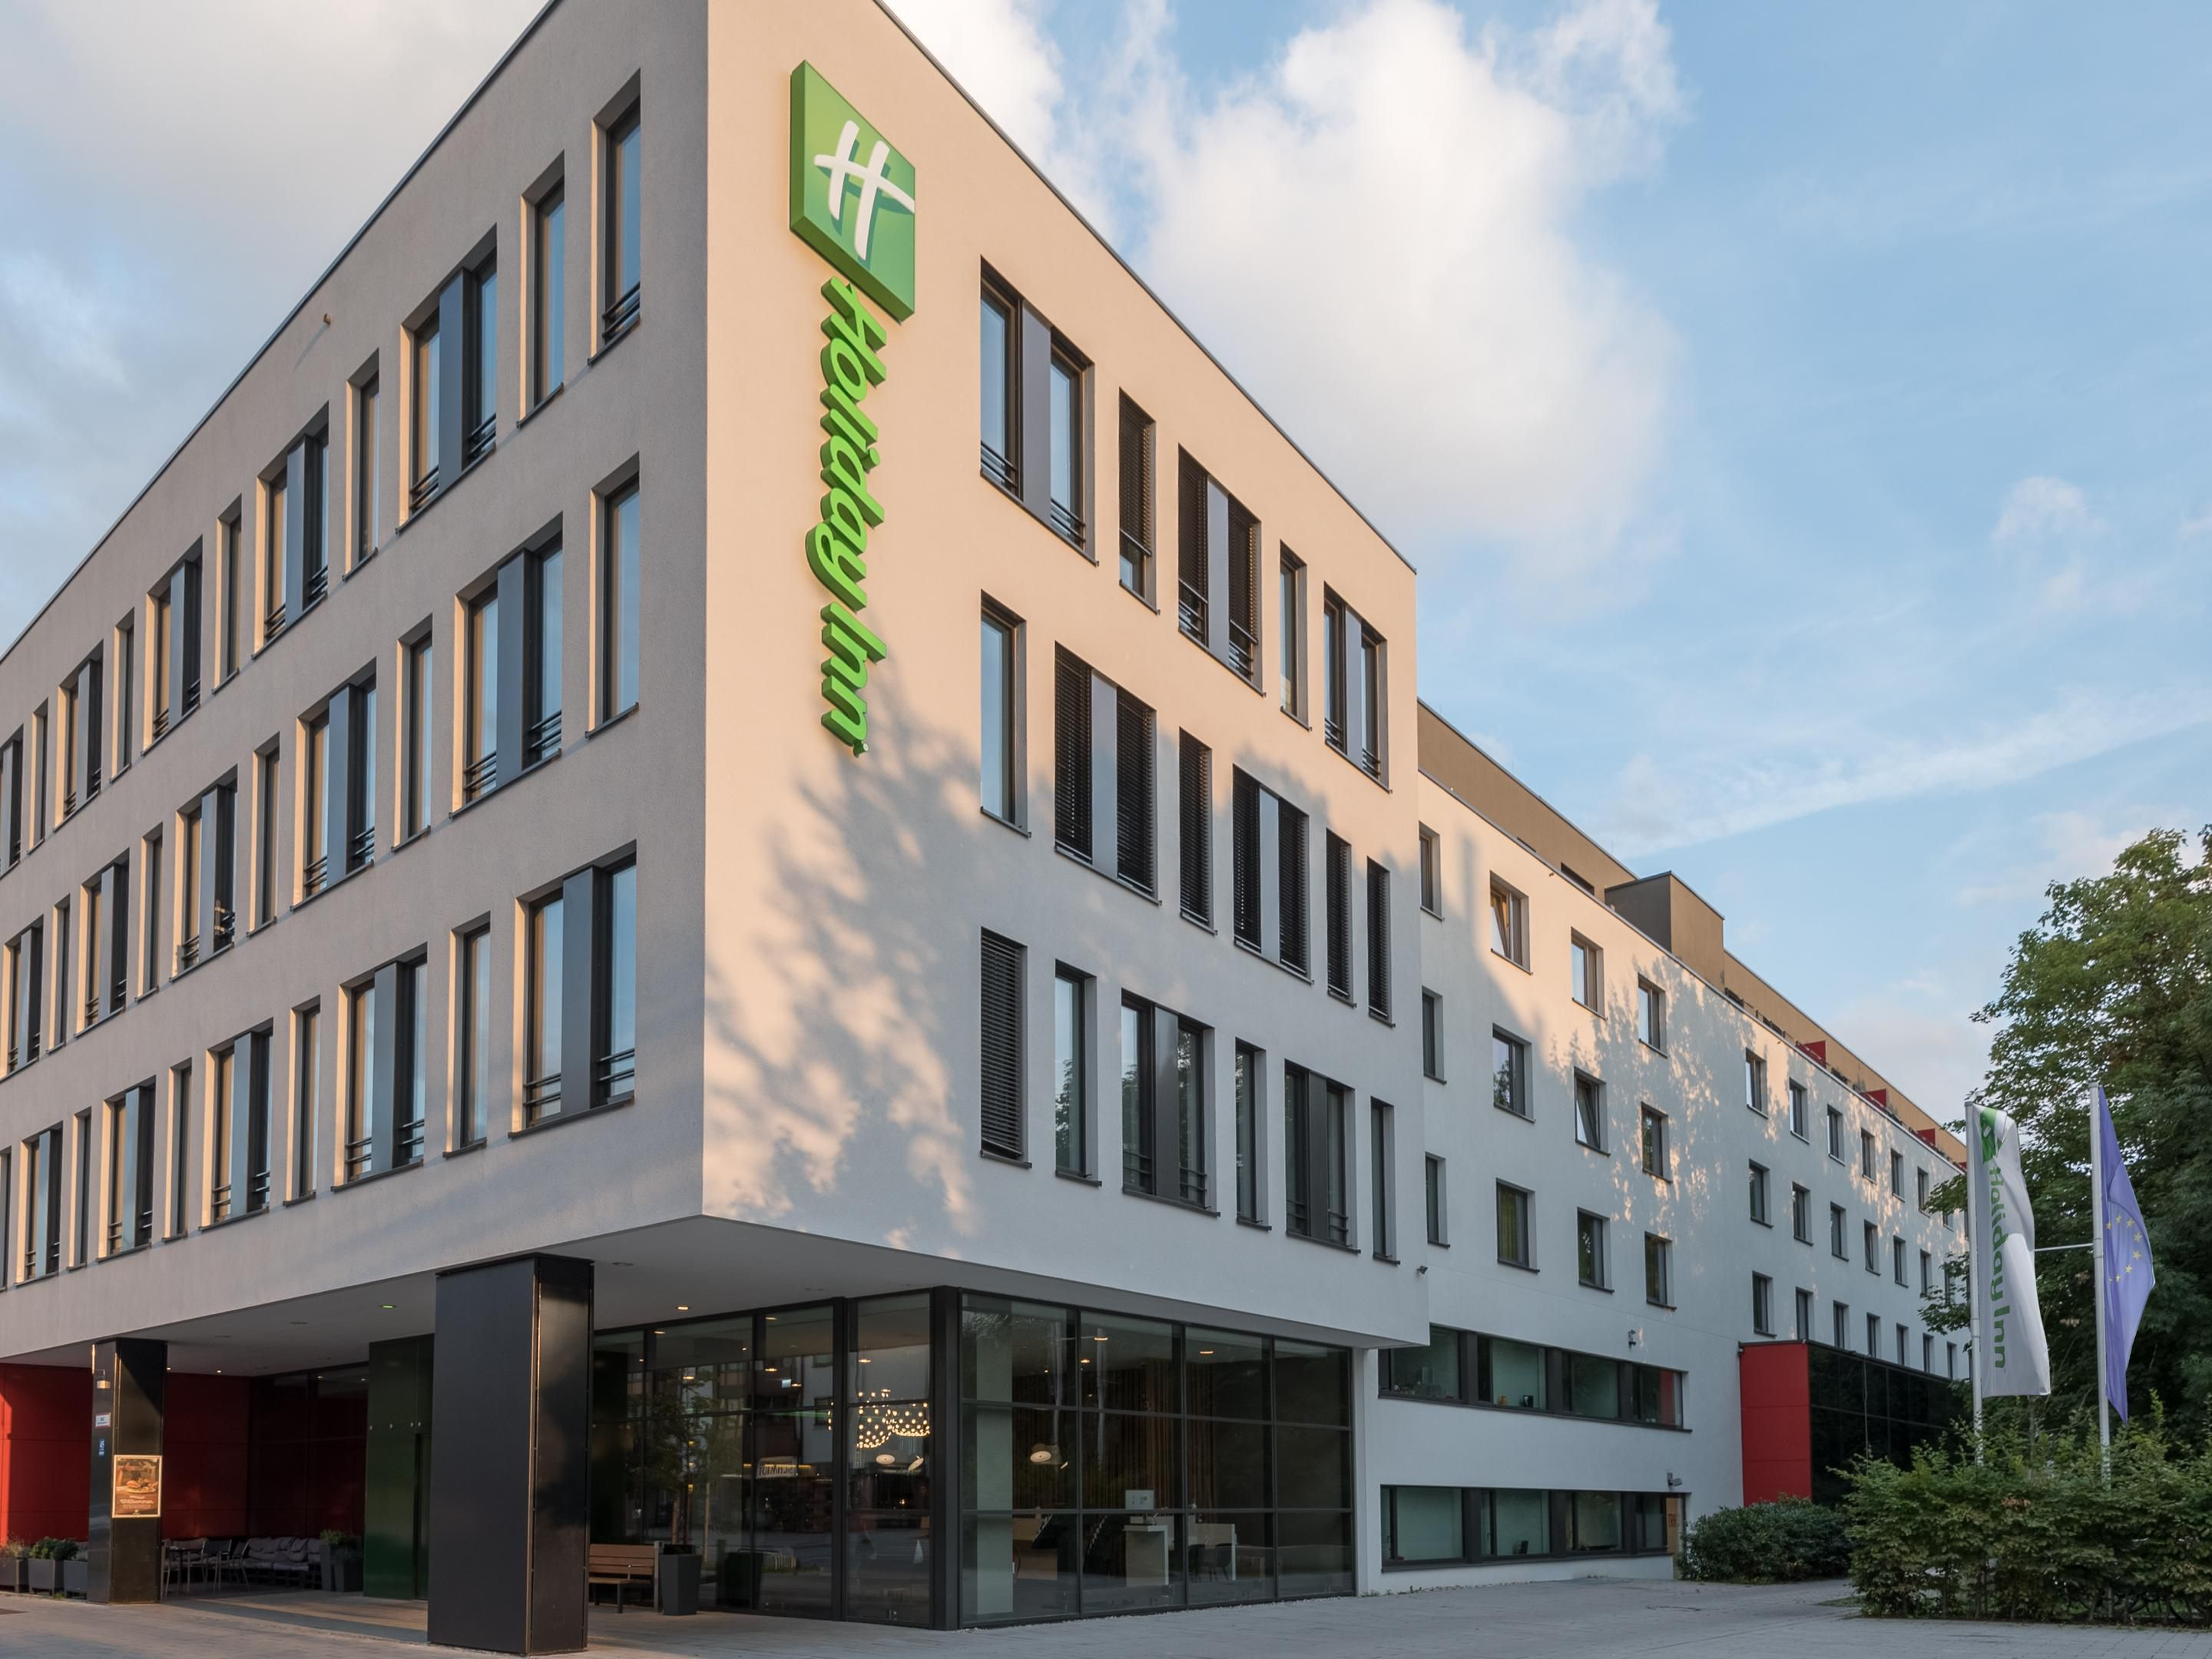 Hotel Holiday Inn Munchen City